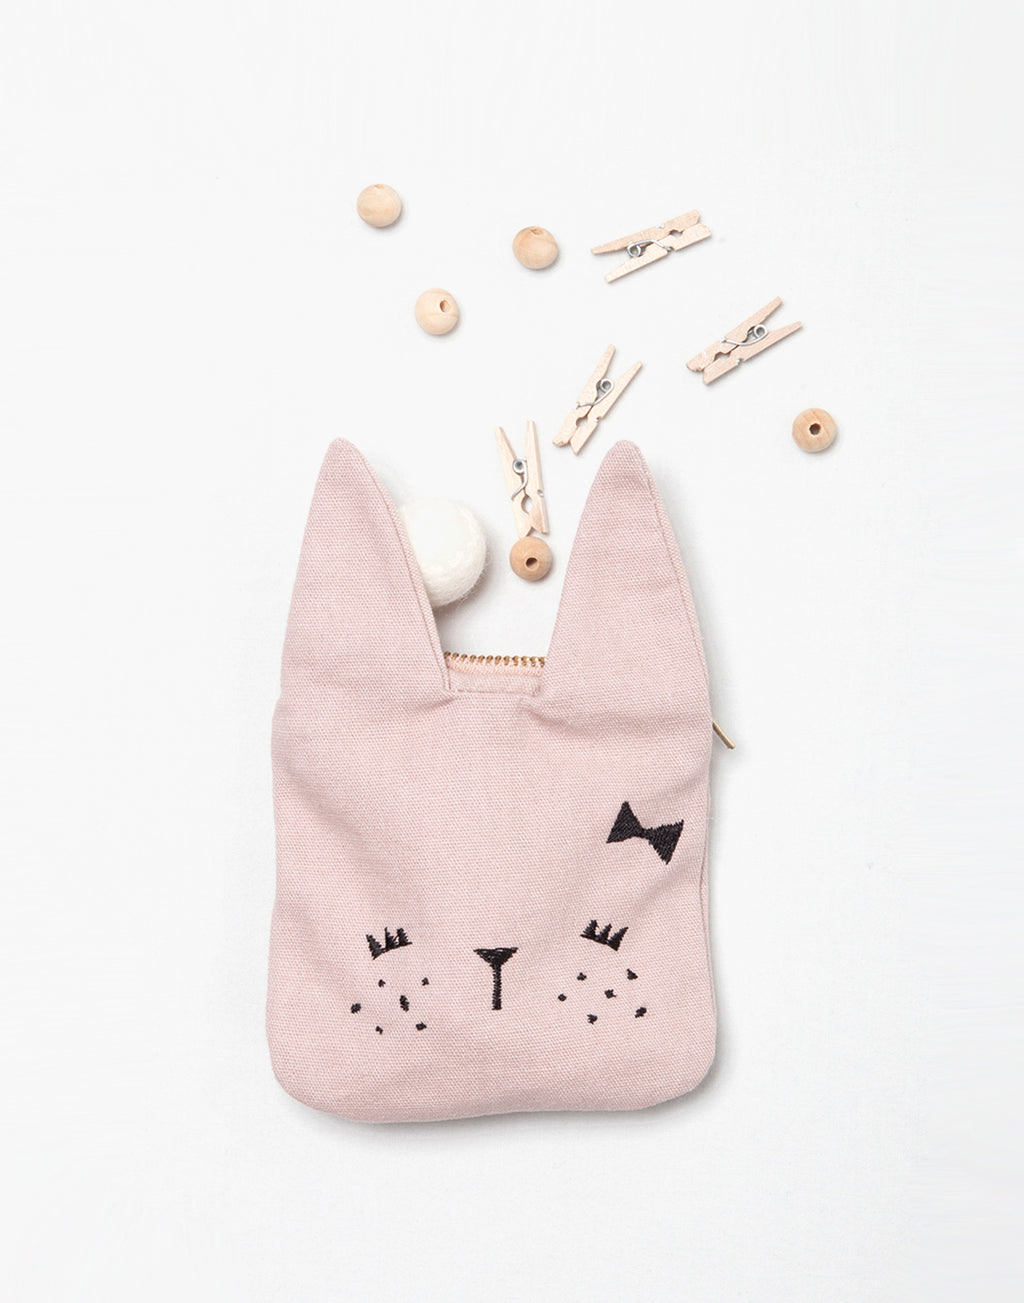 Fabelab   Small organic cotton coin pouch with bunny ears for little treasures.   Size: 10 x 14,5cm.  Color: pink, black.  Composition: 100% GOTS certified organic cotton, nickel free zipper.   Design from Denmark.